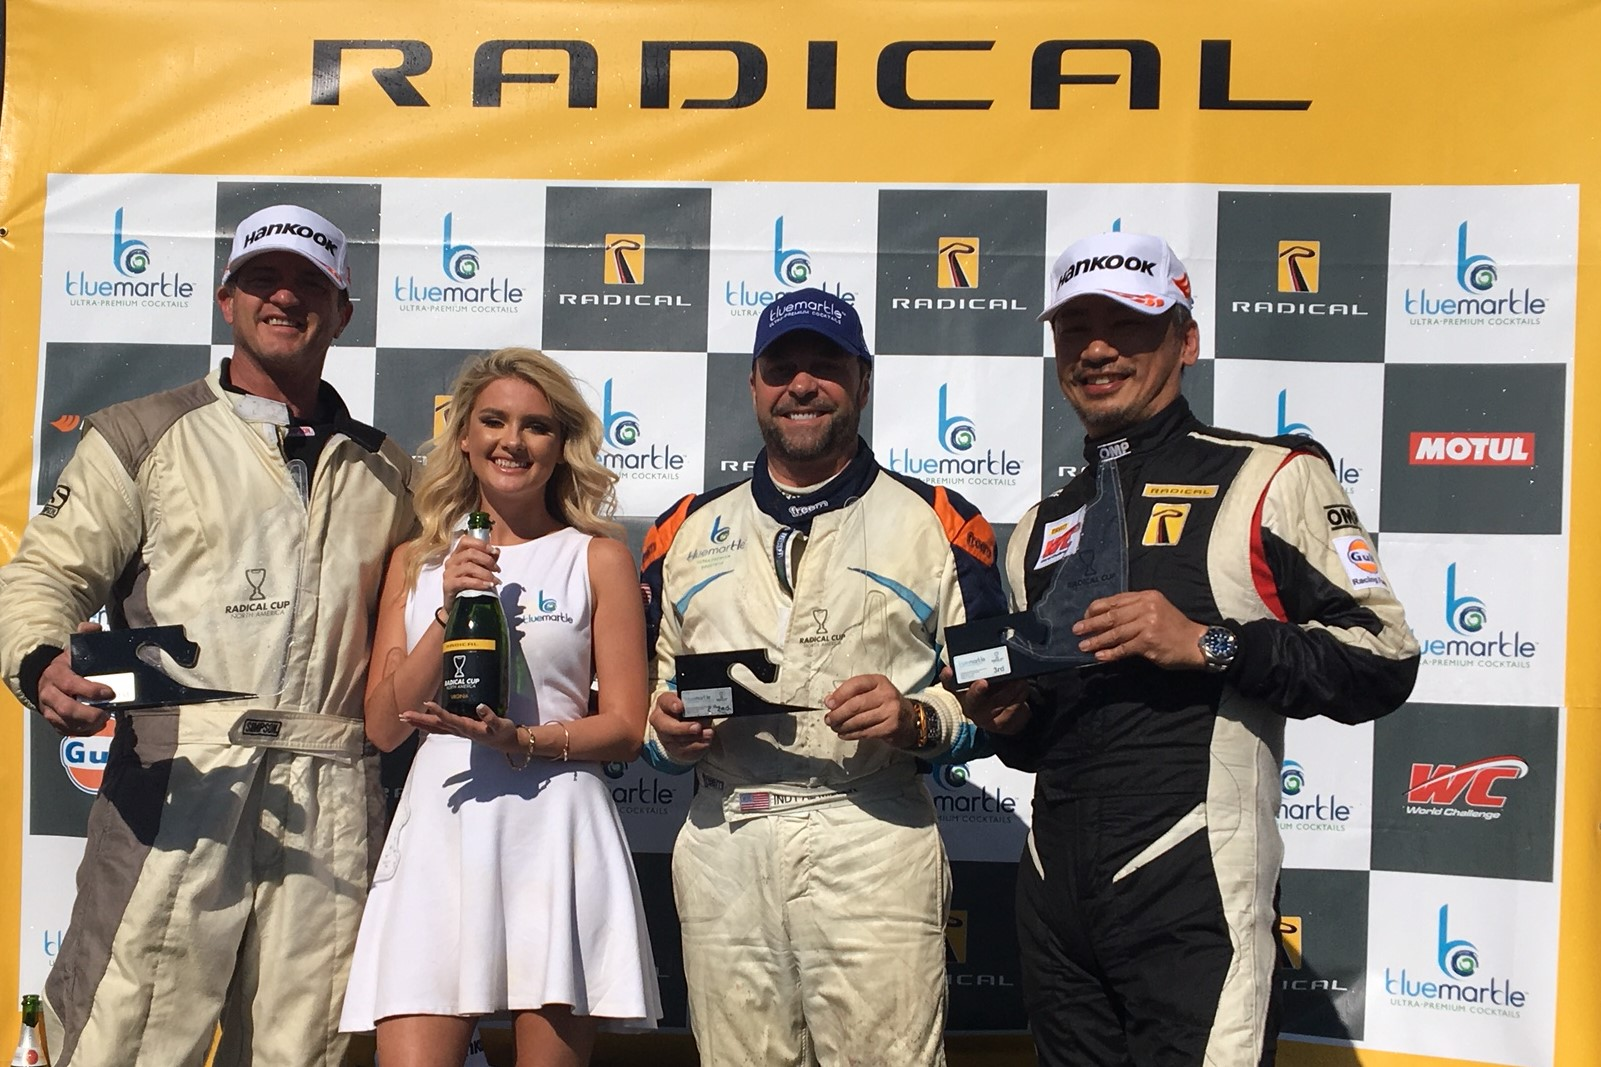 Radical Cup Confirms VIR Opening Round, Extends Blue Marble Cocktails Title Sponsorship